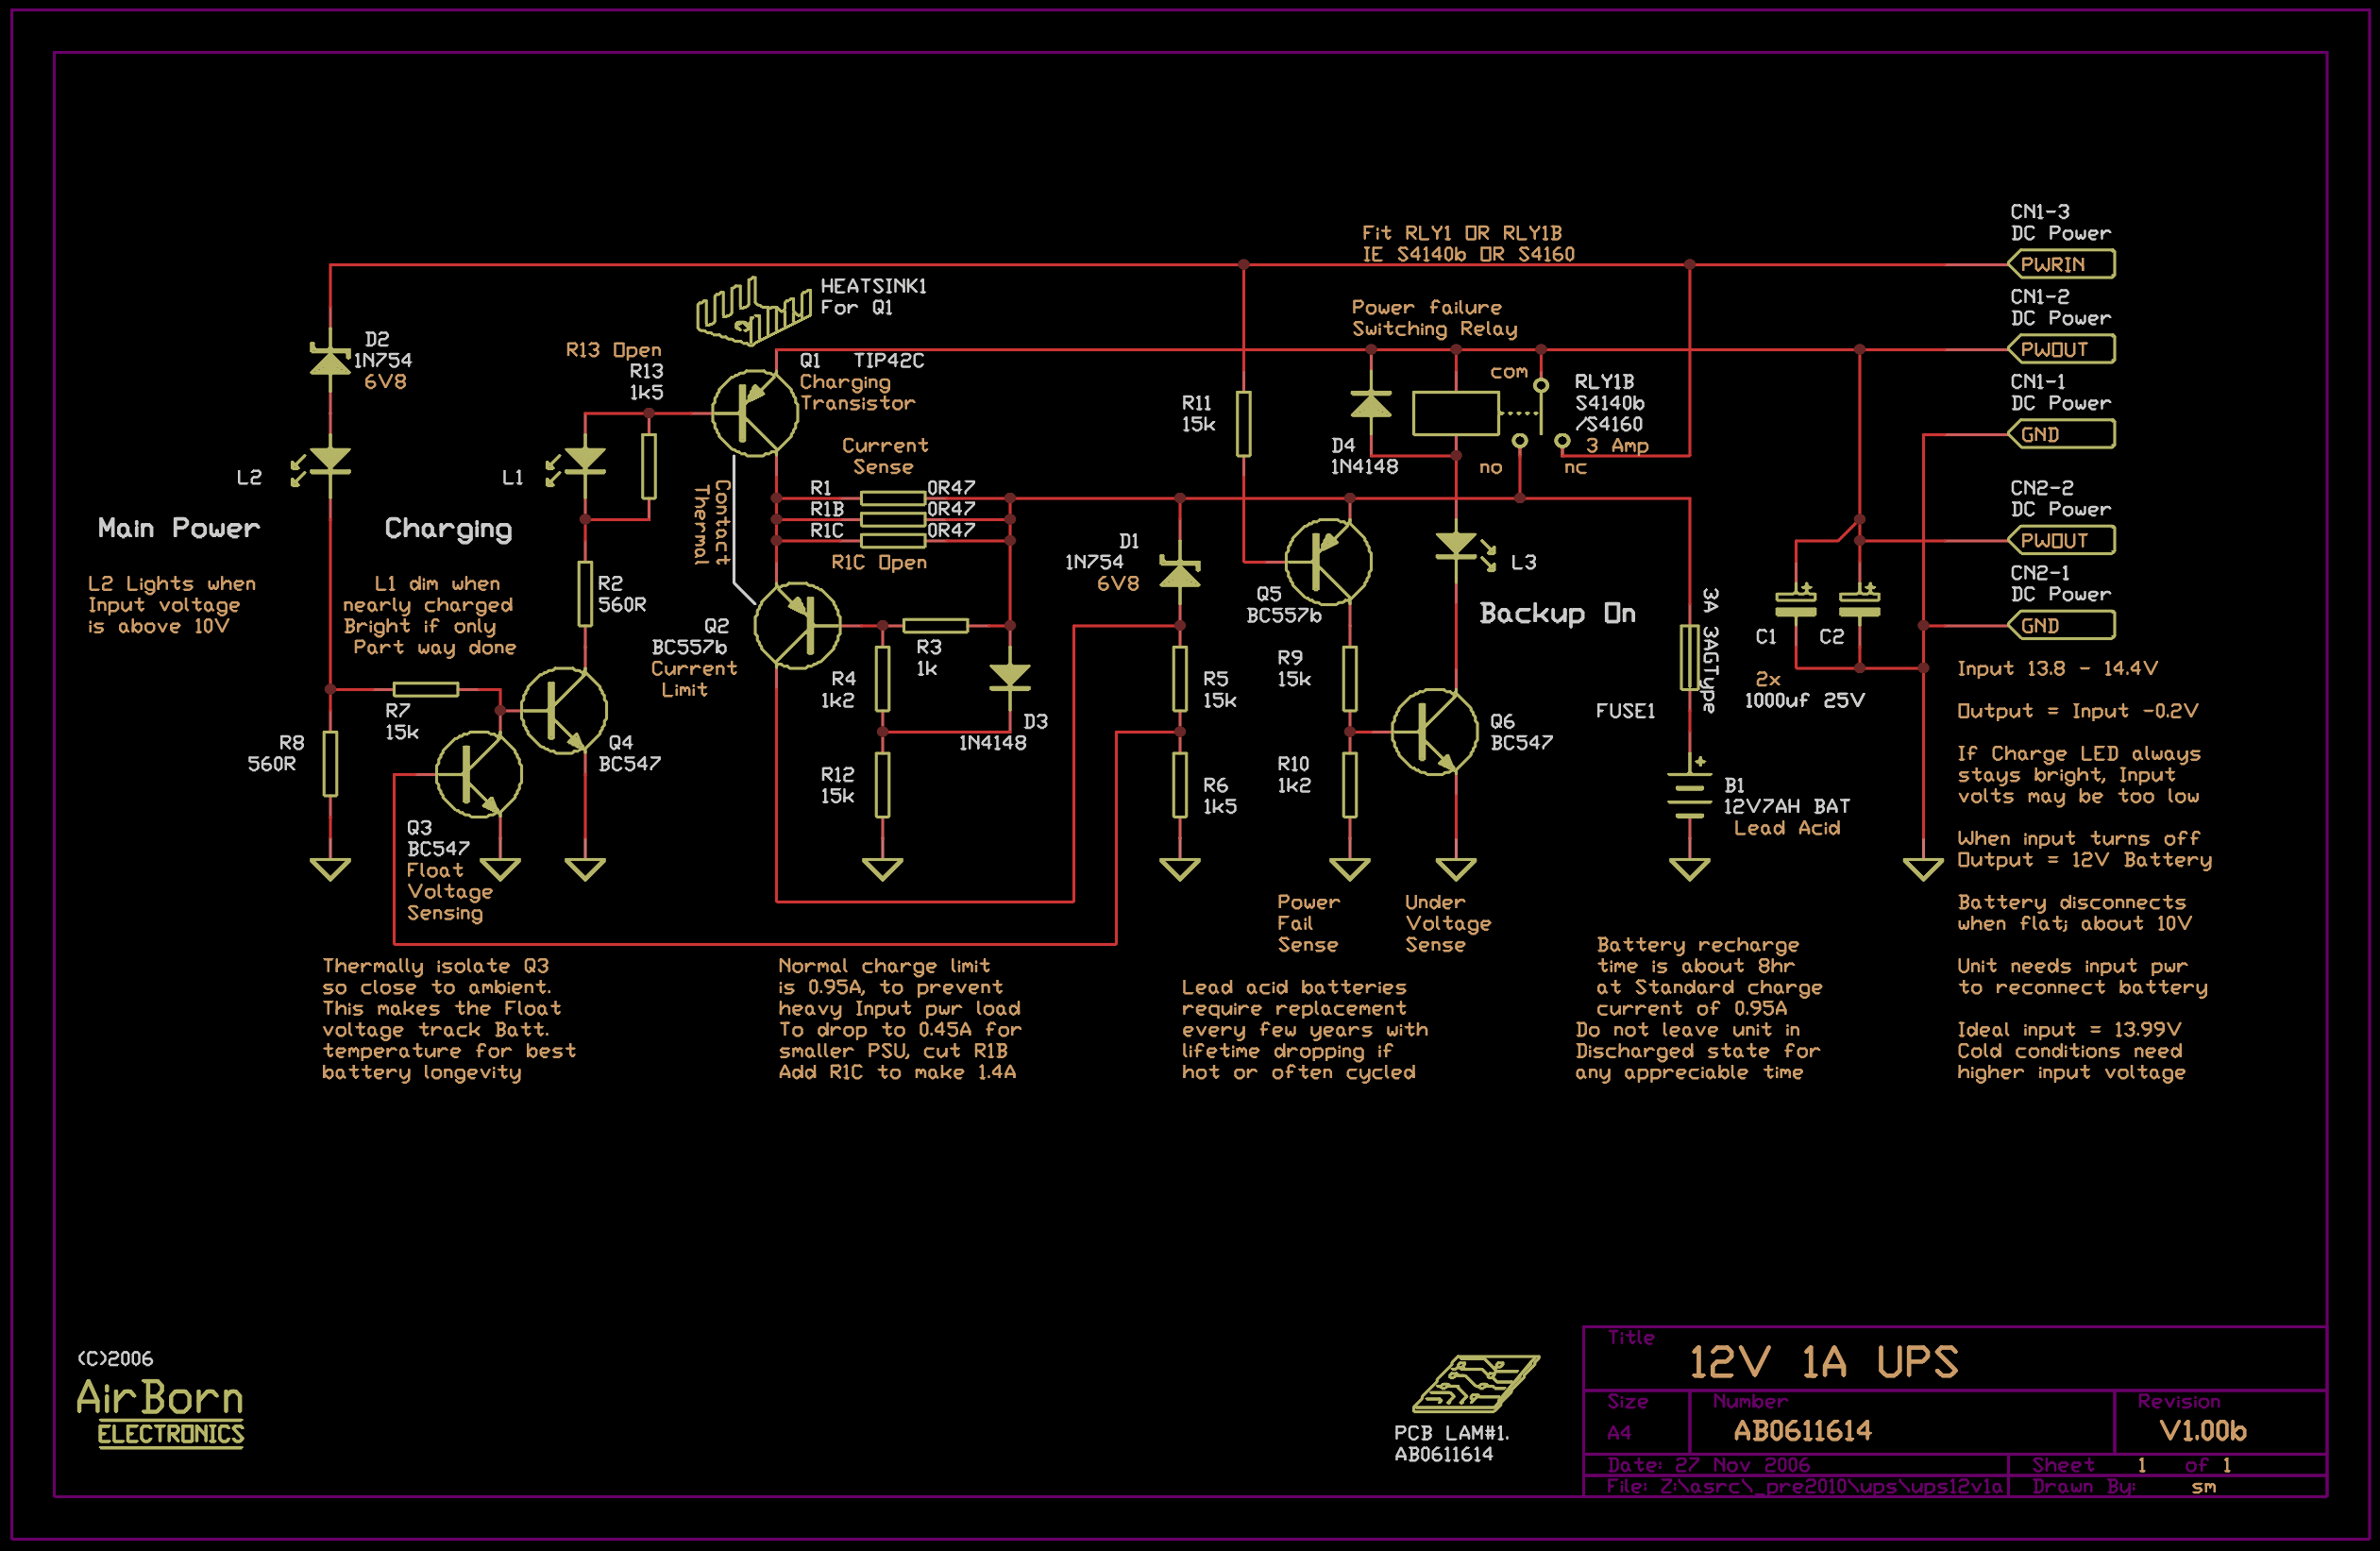 Apc Wiring Battery Diagram Power Supply Pictorial Kvm 500va Ups Circuit Wire Schematic On